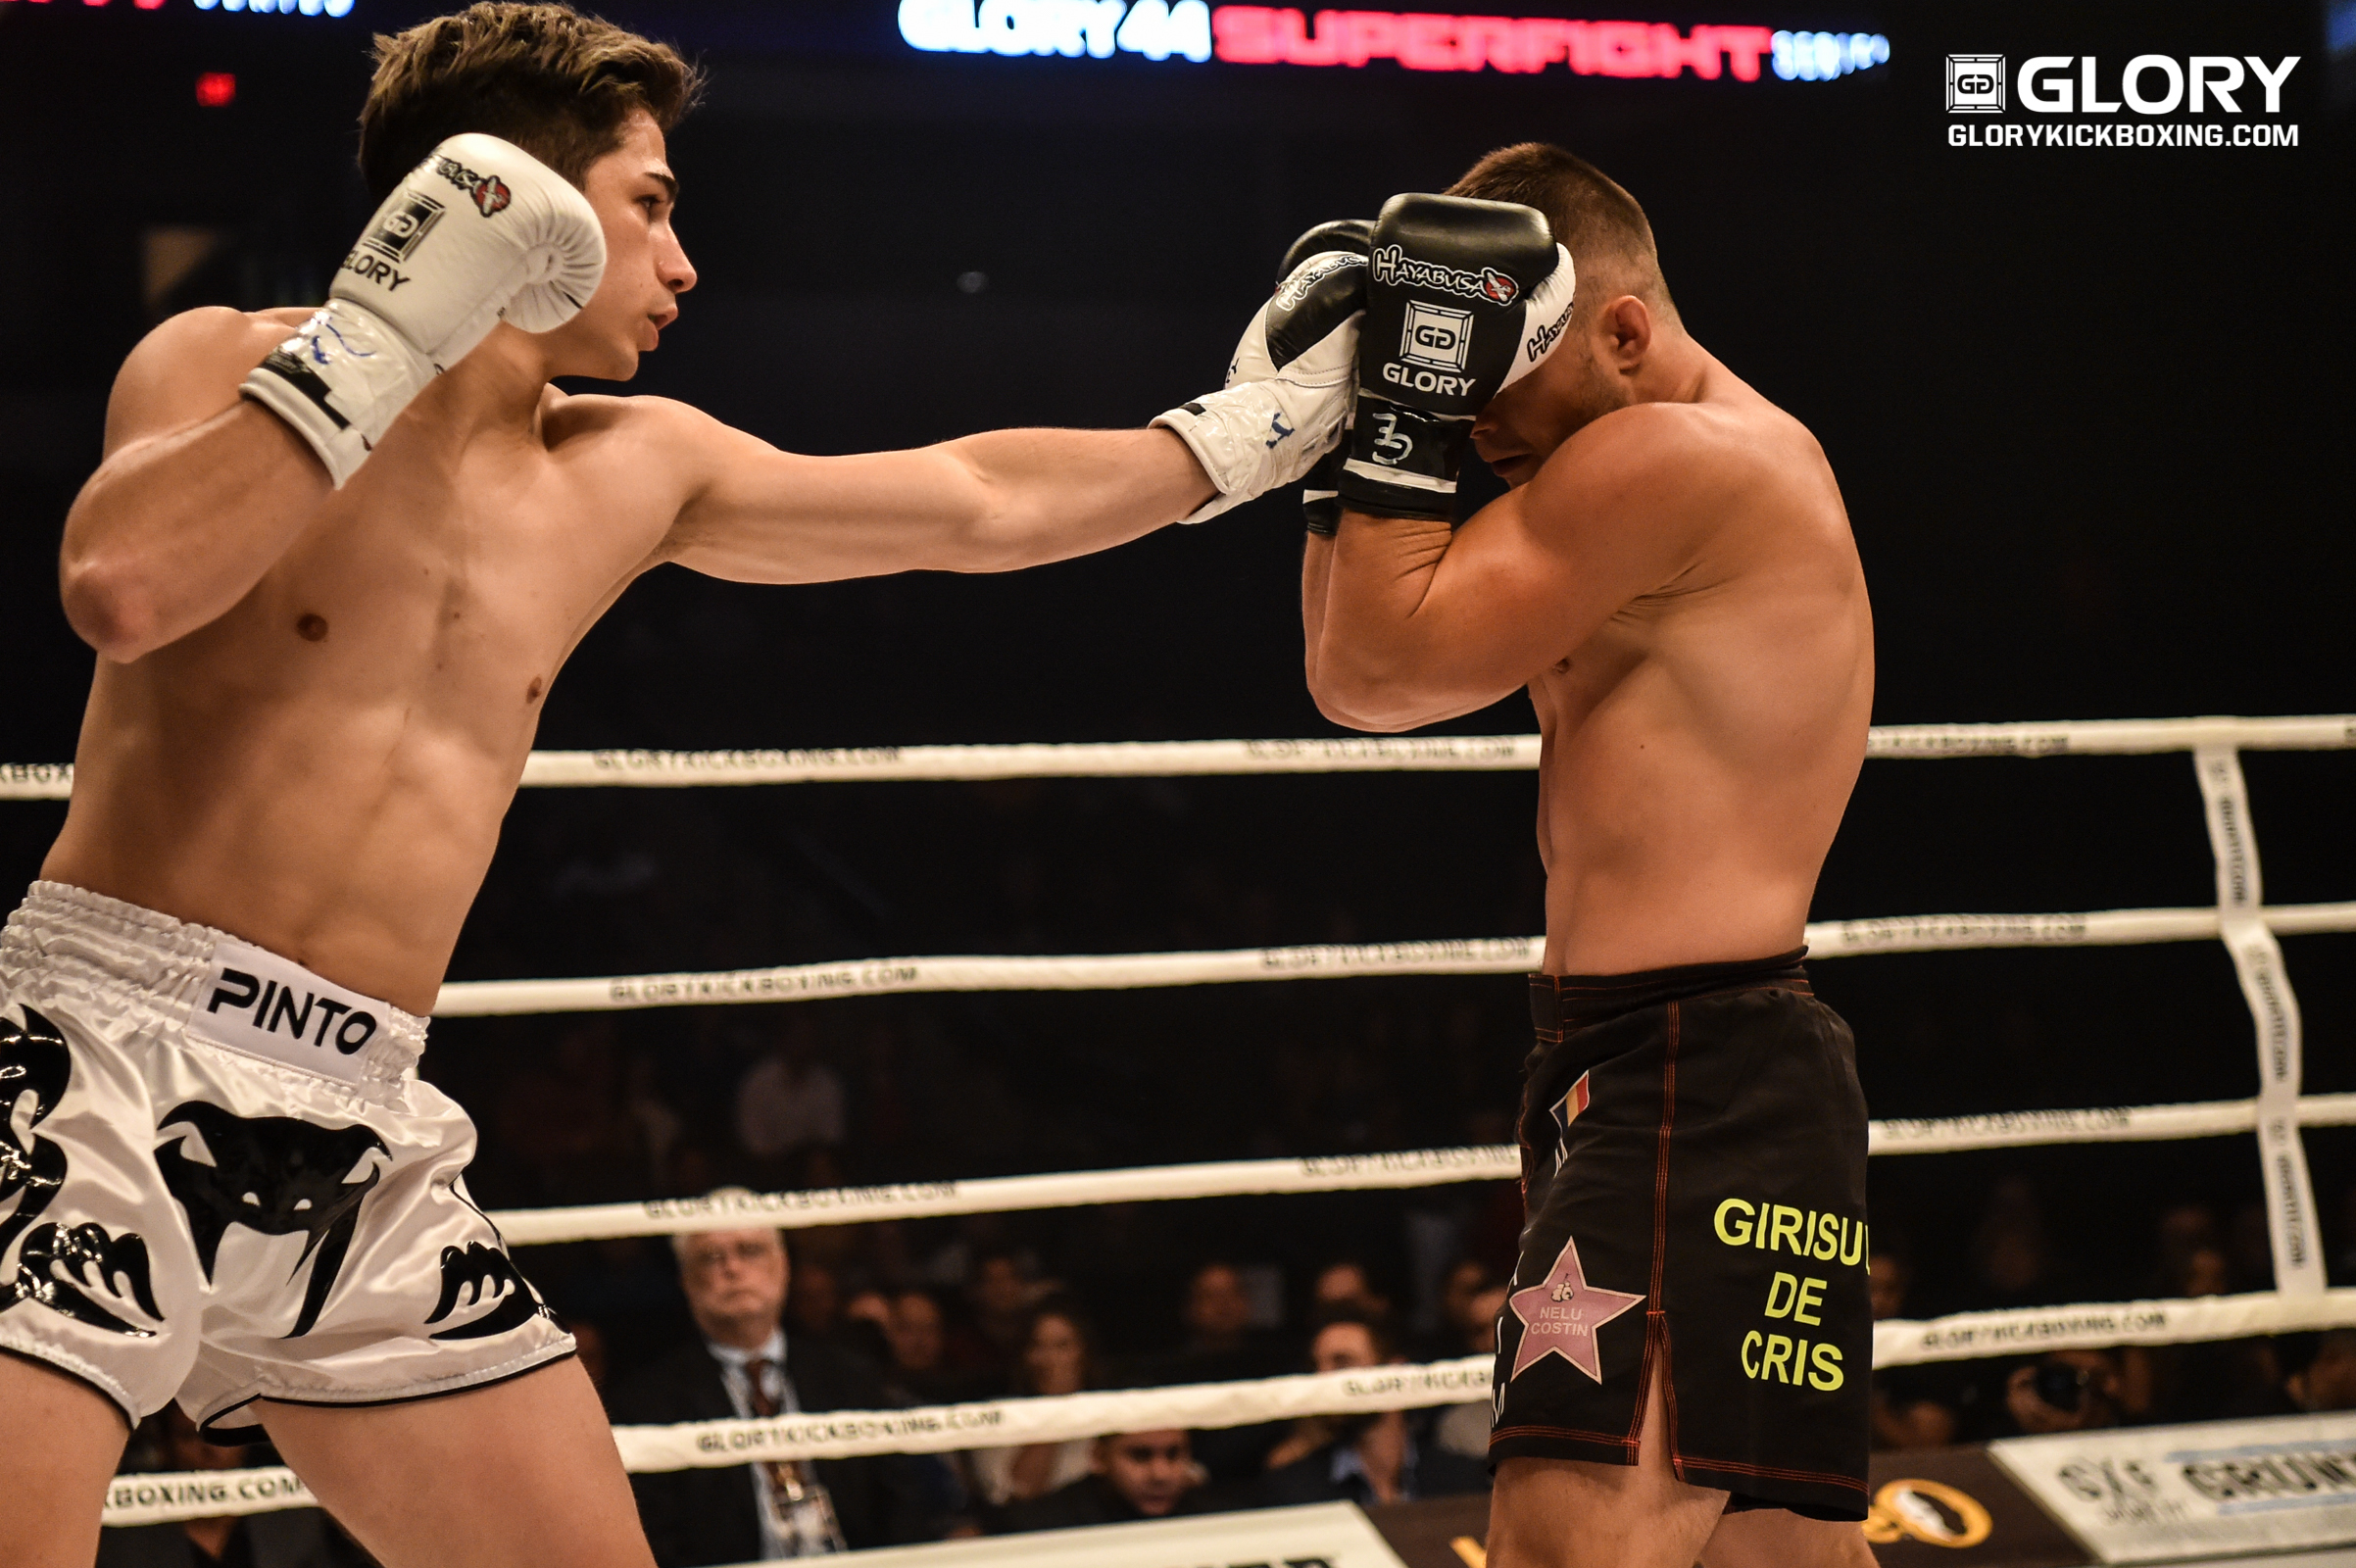 Leo Pinto narrowly bests Maxim in GLORY 44 SUPERFIGHT SERIES opener